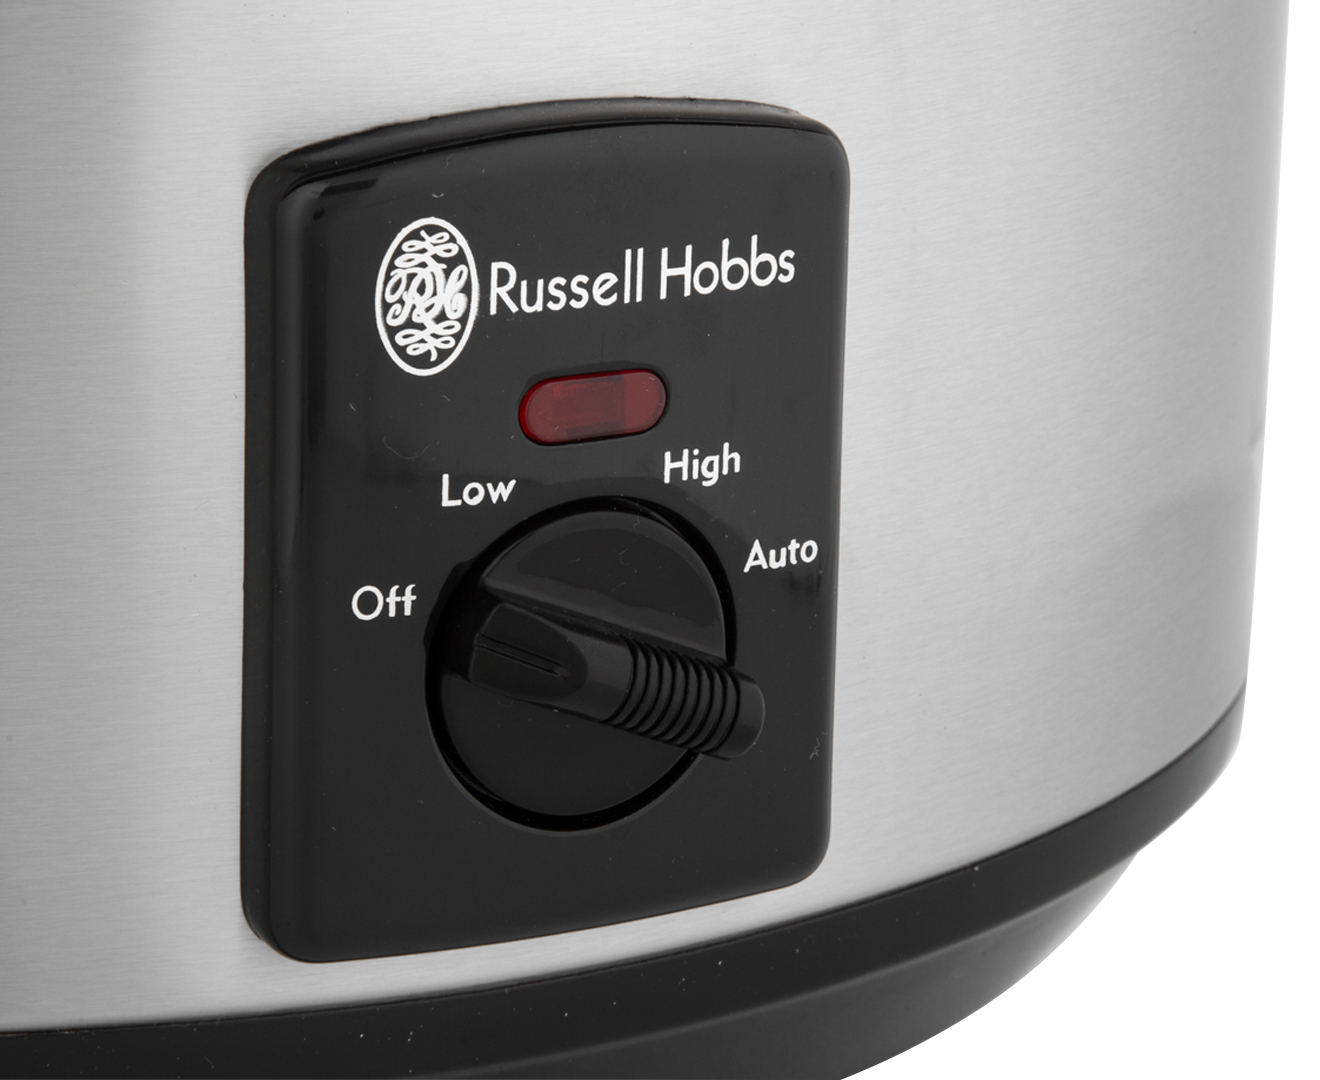 russell hobbs 3.5l slow cooker instructions